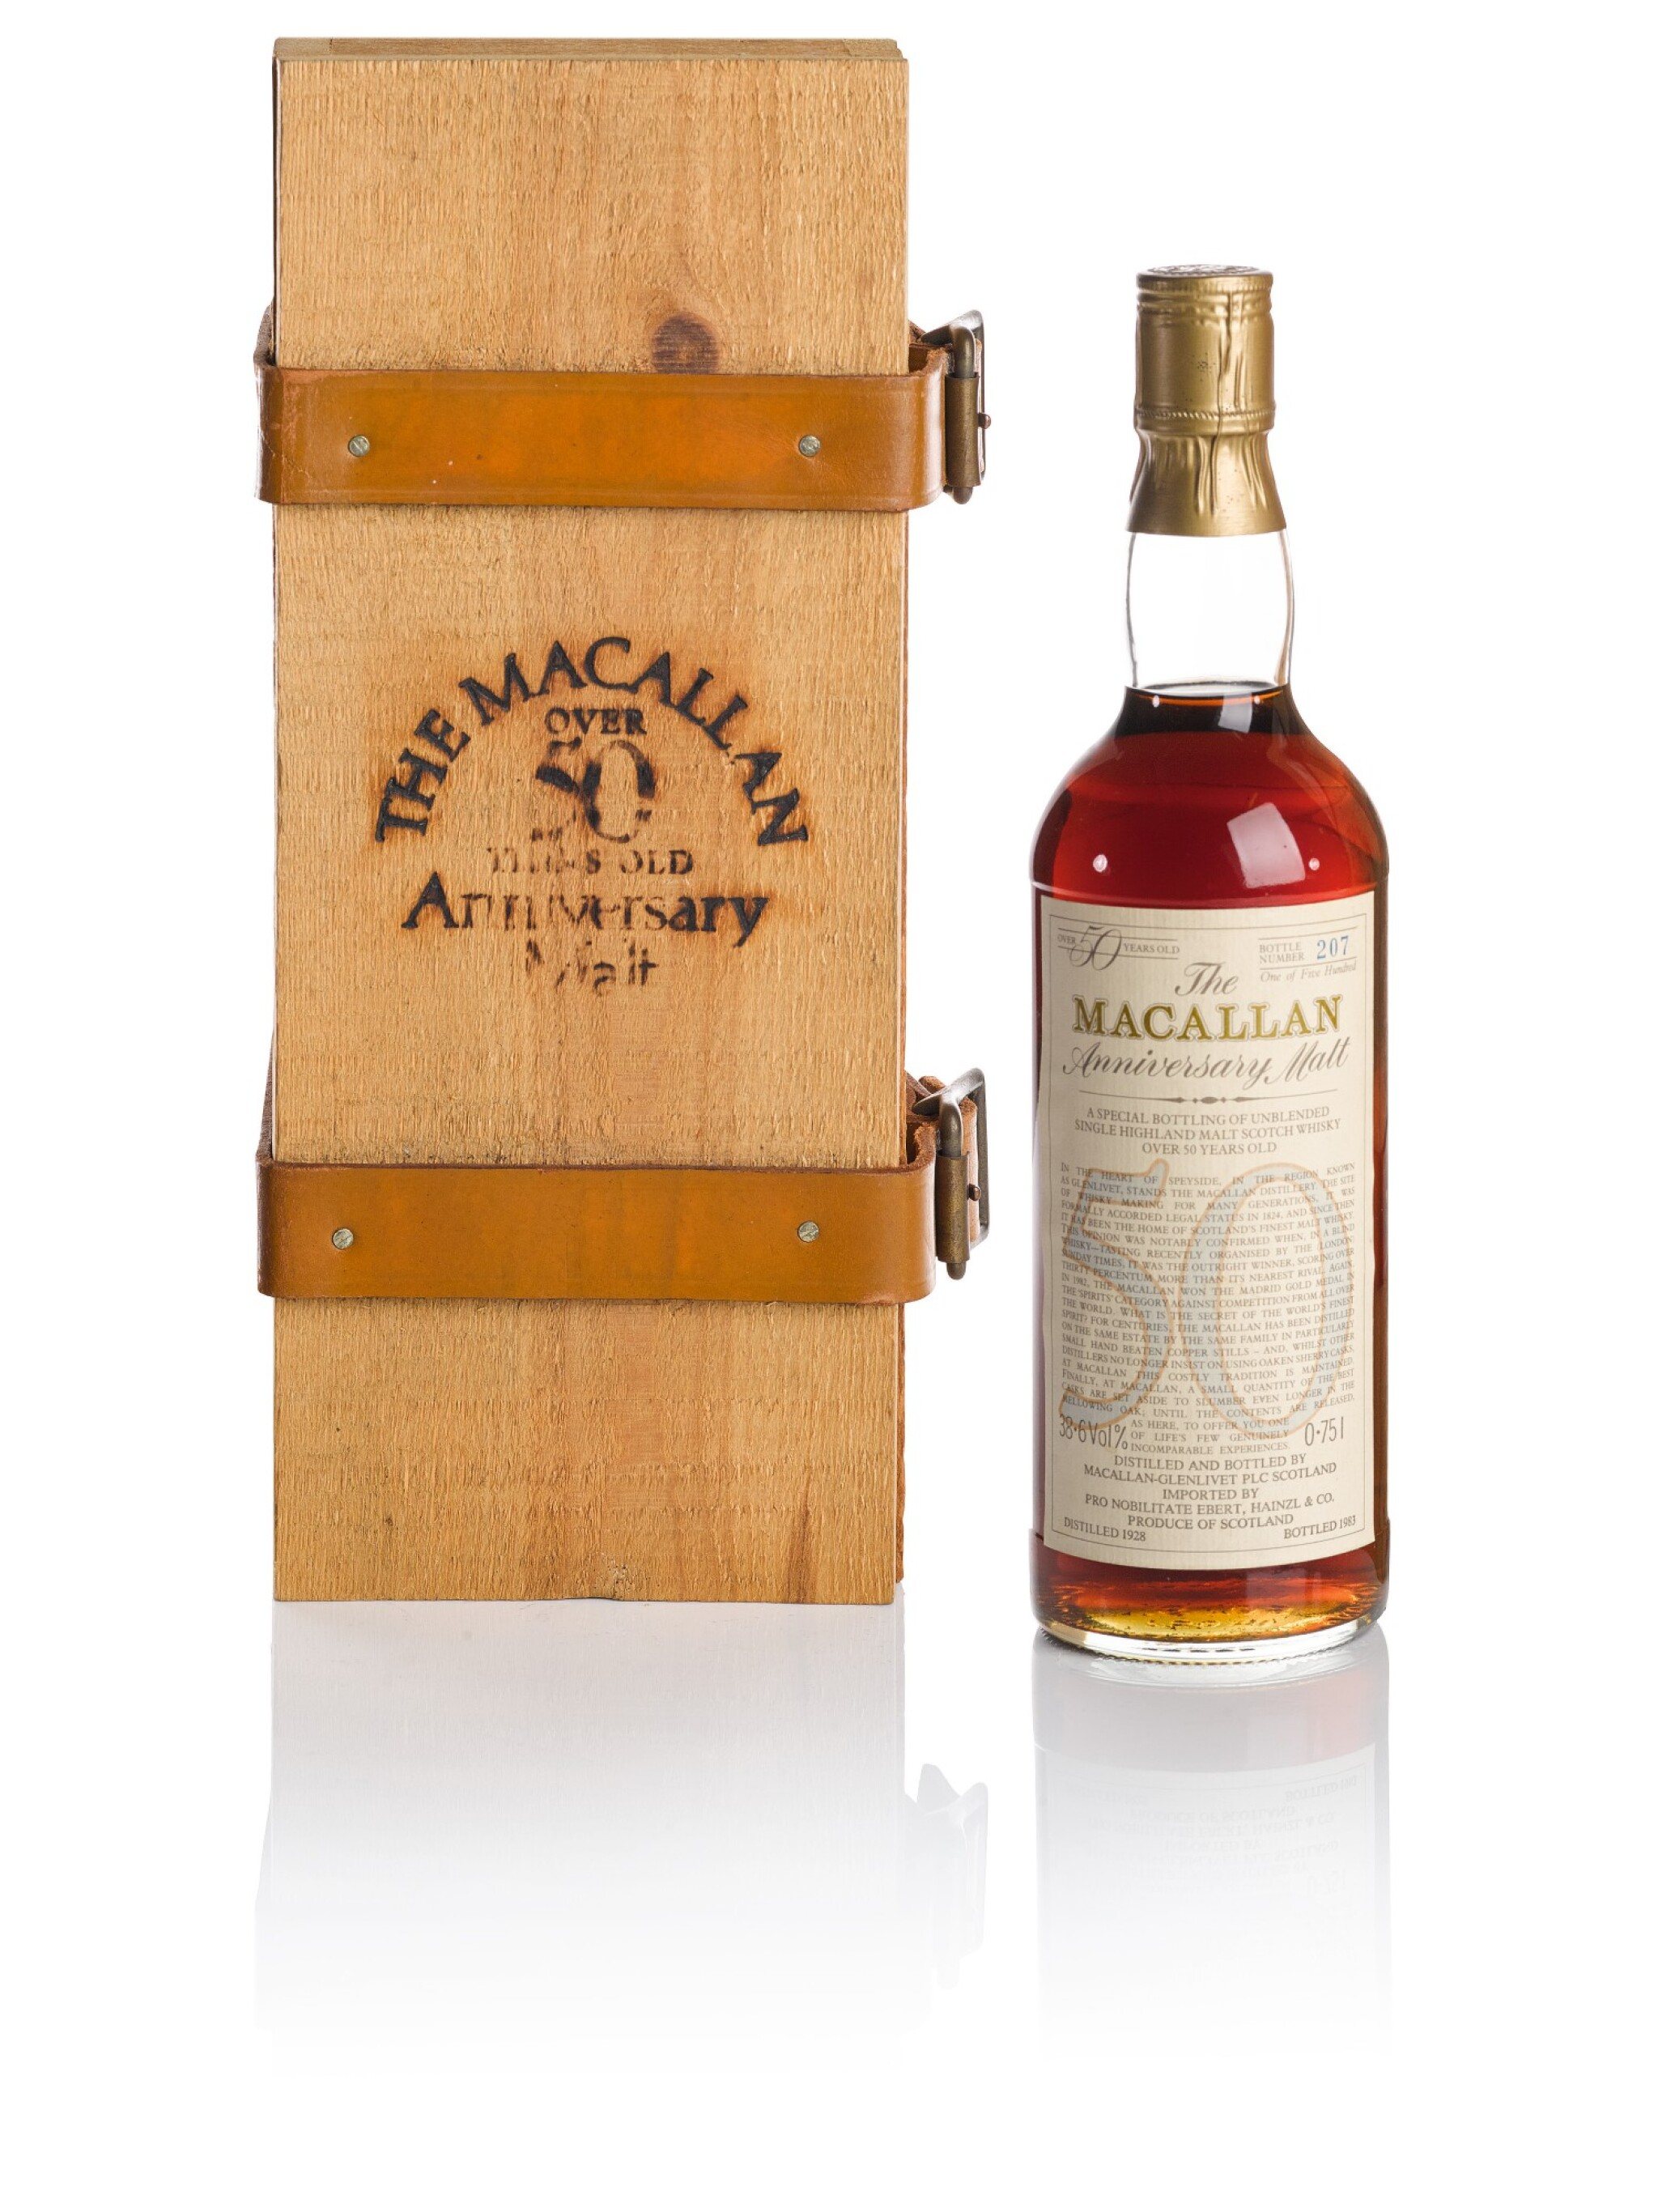 View 1 of Lot 176.  THE MACALLAN 50 YEAR OLD ANNIVERSARY MALT 38.6 ABV 1928.